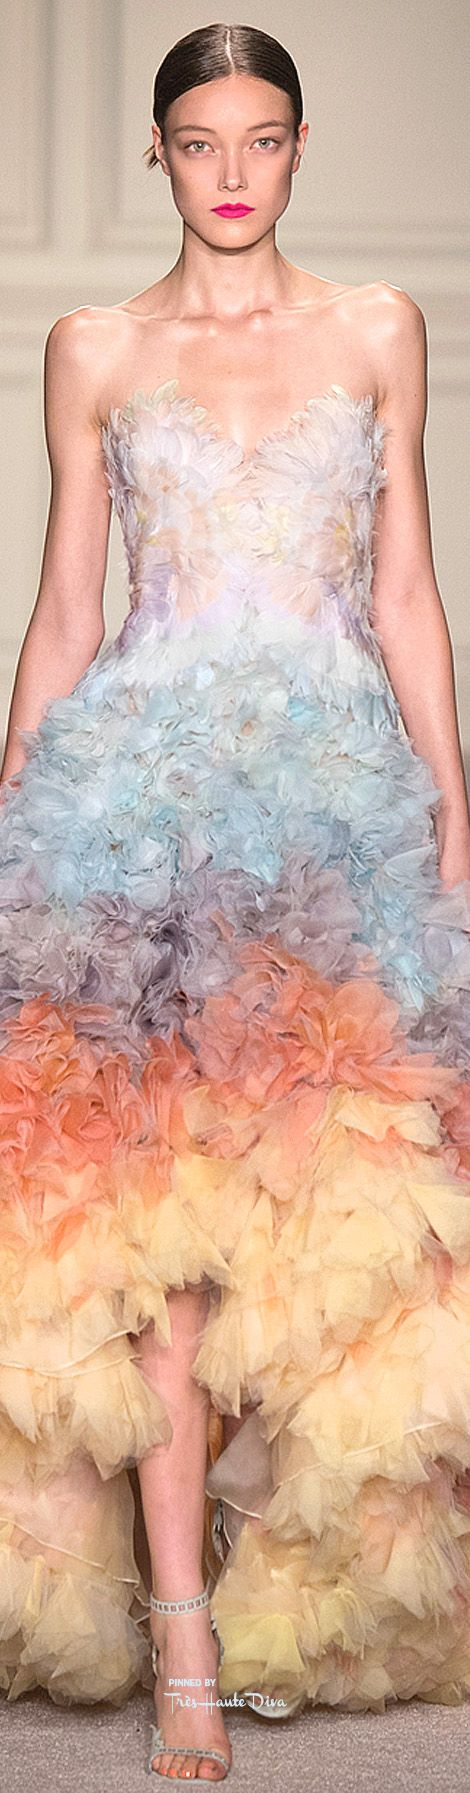 Marchesa S-16 RTW: gown with voluminous skirt featuring layers of dip-dyed tulle in an ombré of pastels.